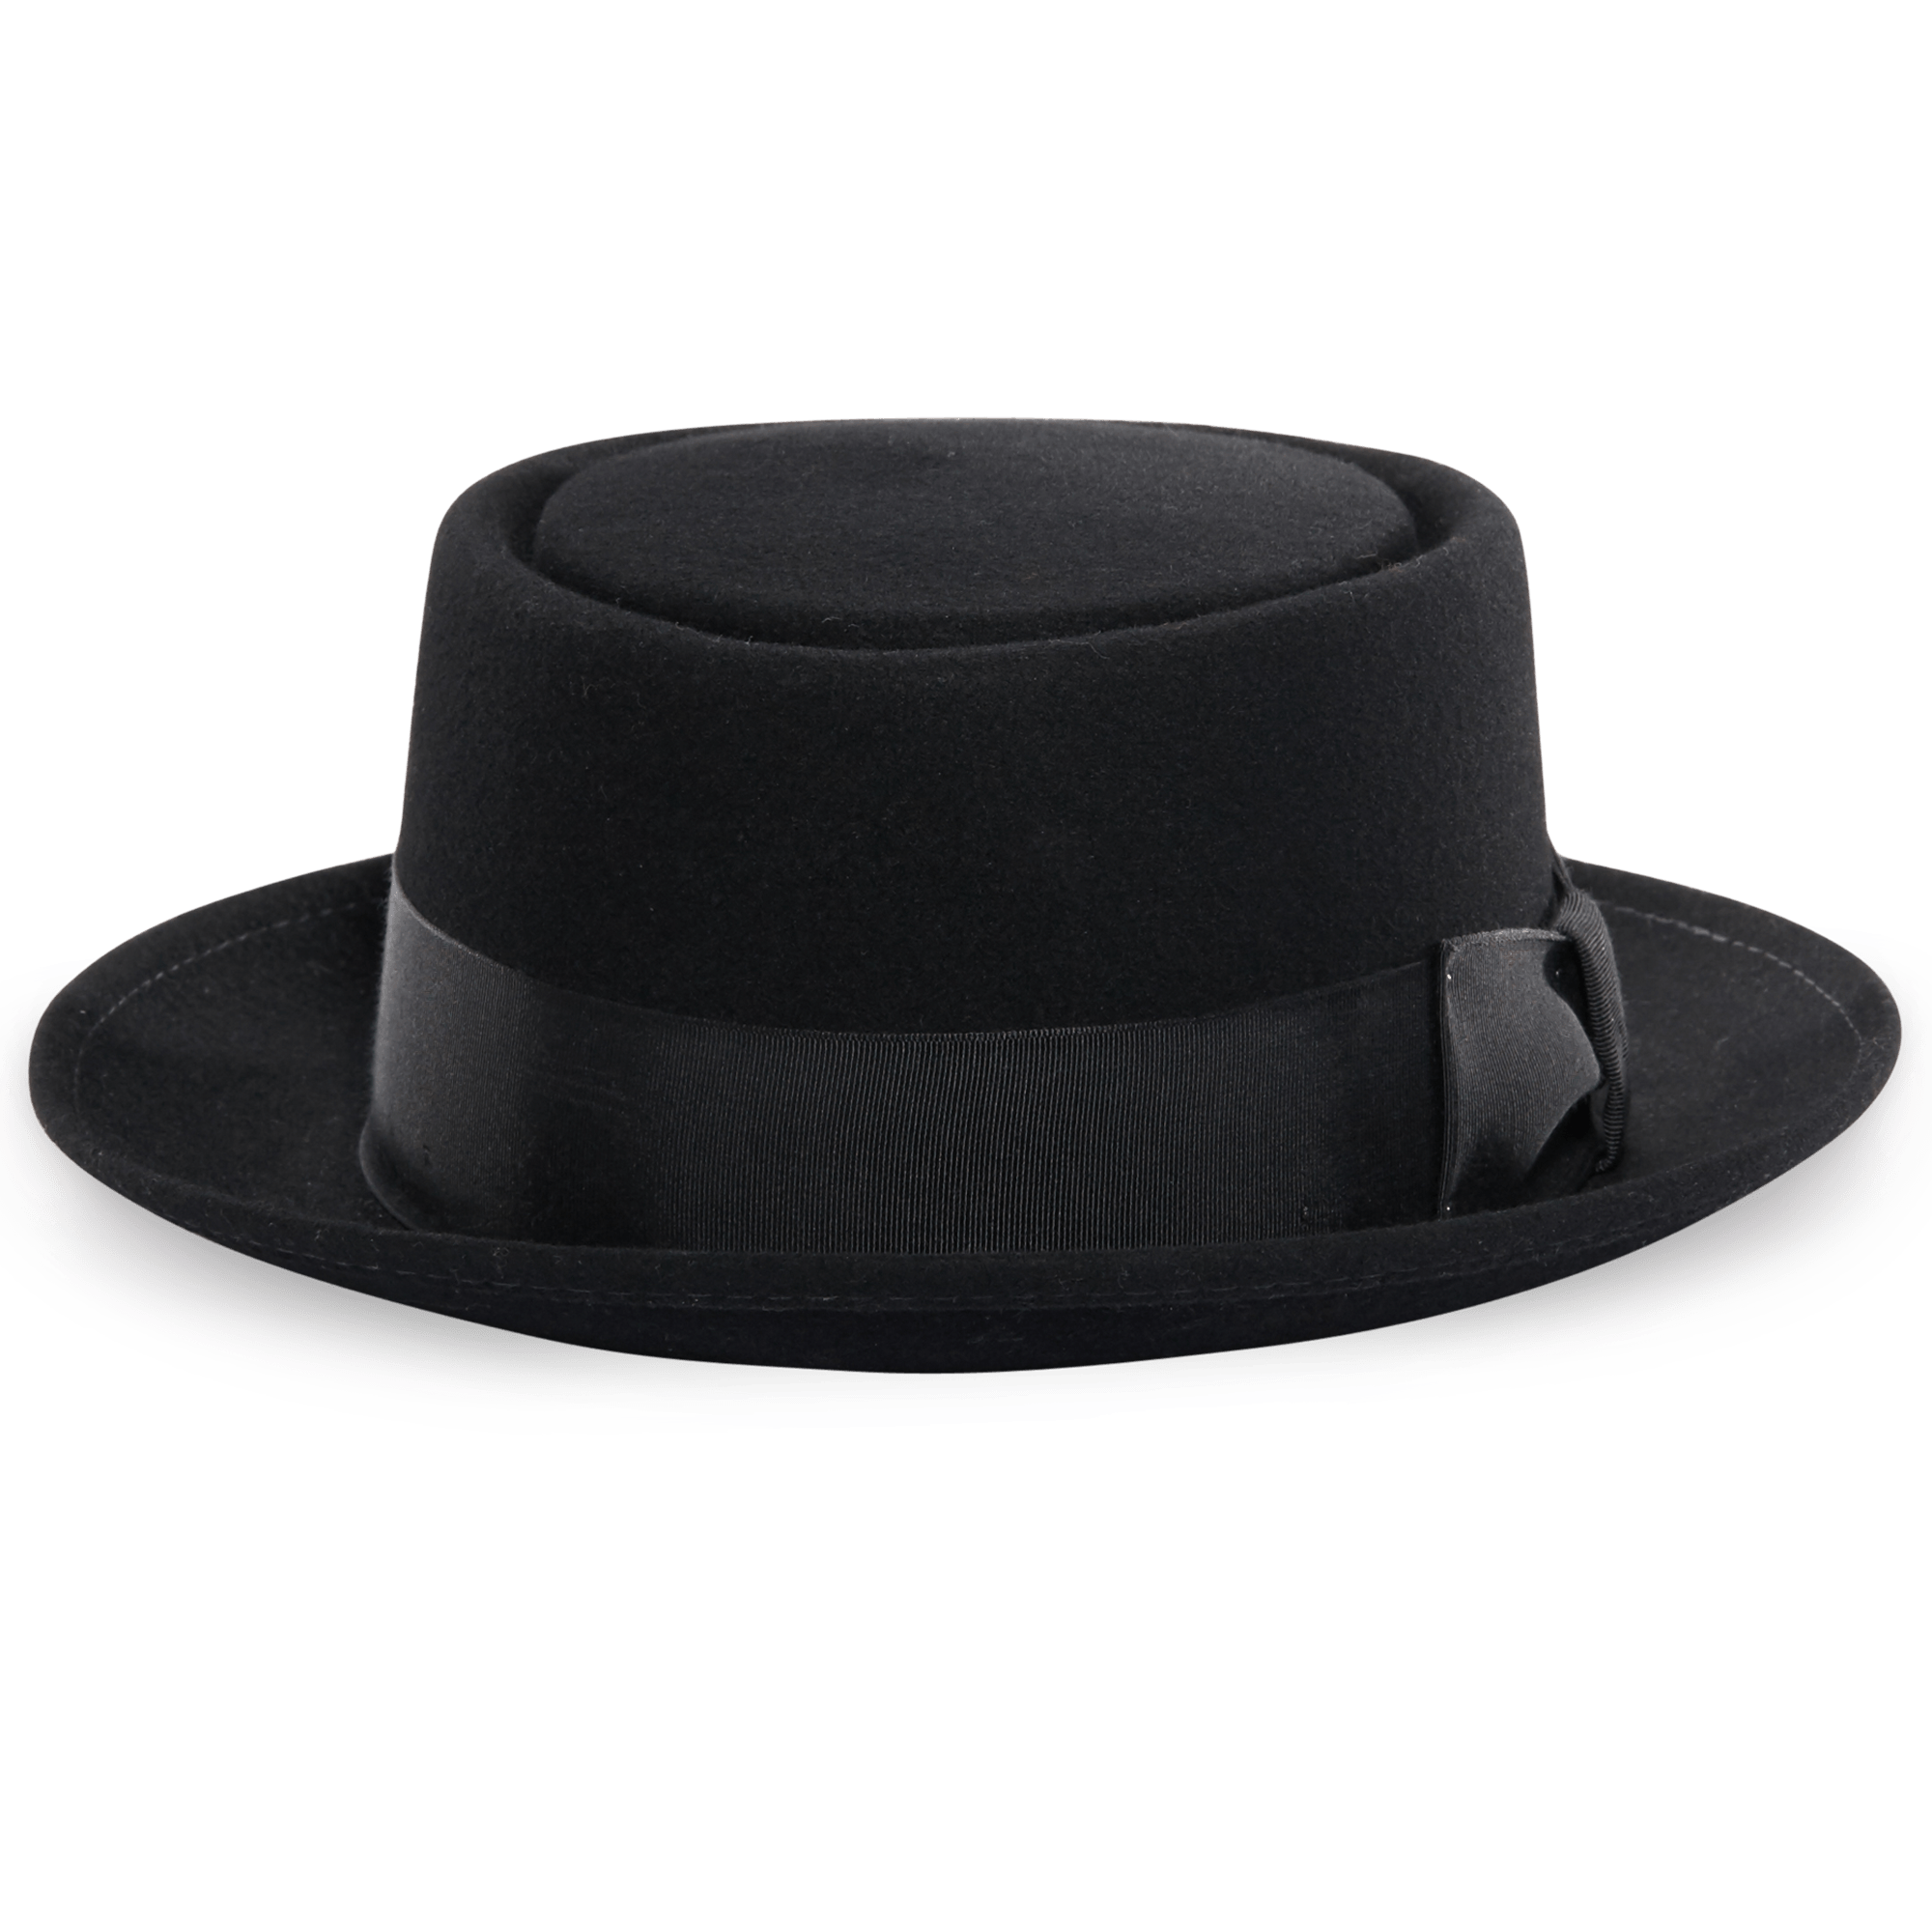 Black fedora png. Victorian hat transparent stickpng